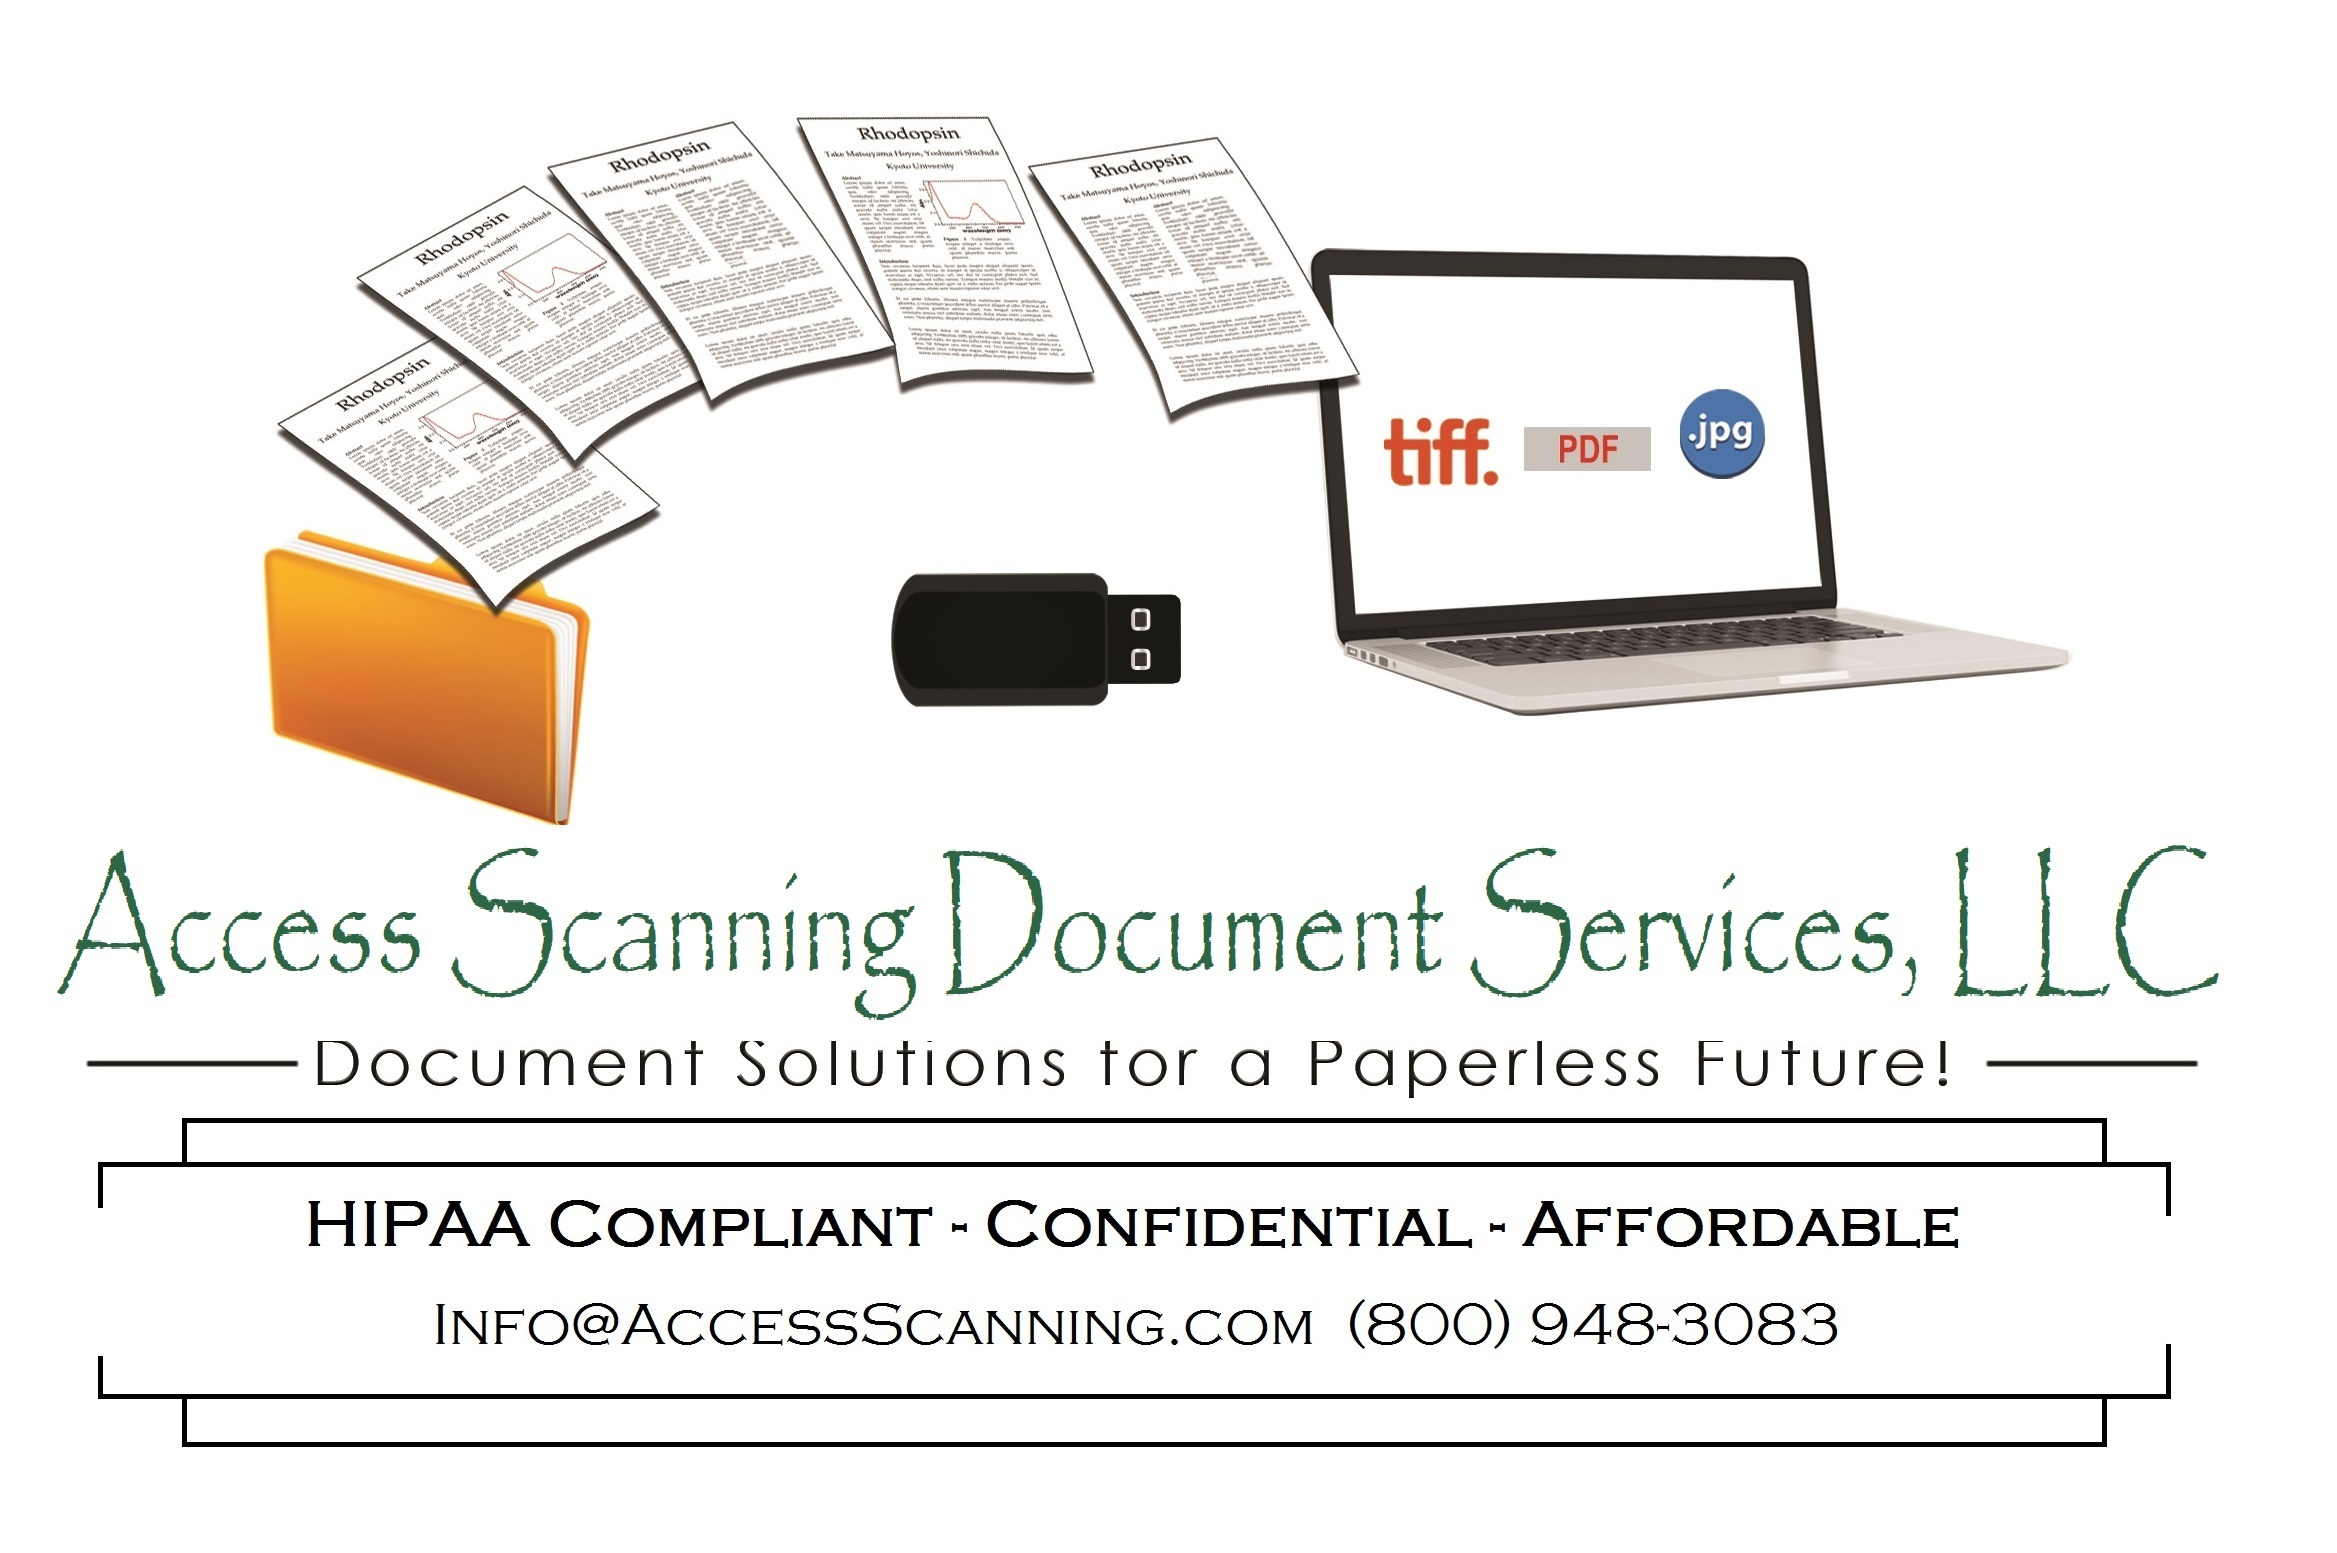 Document Scanning Services Los Angeles California